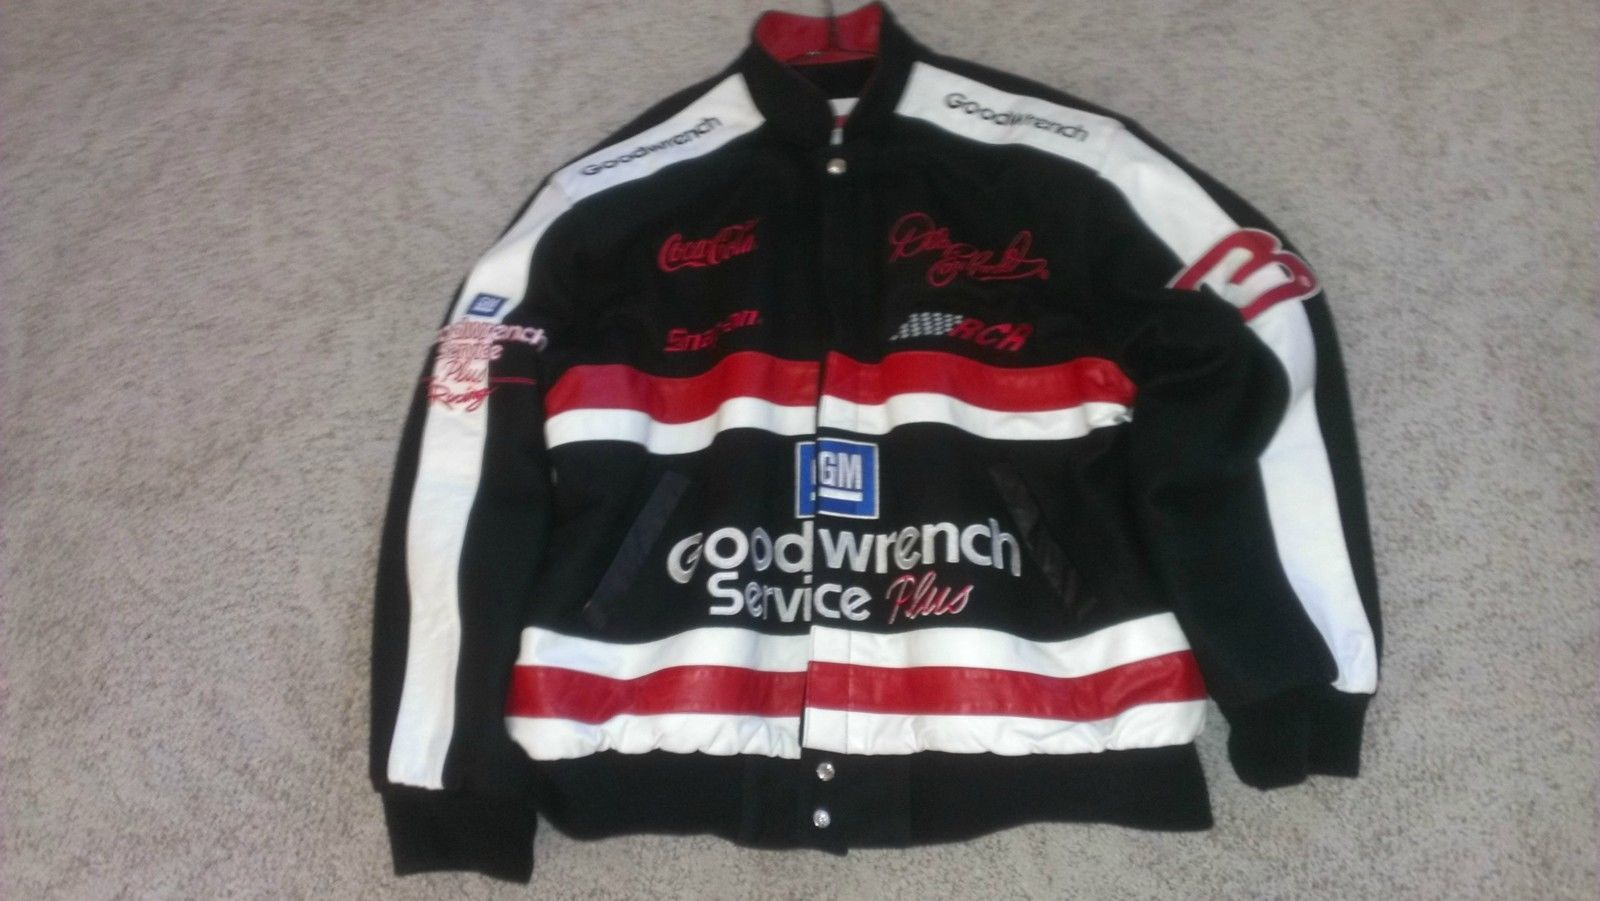 Womens Dale Earnhardt and Jr Number 3 and 88 NASCAR Racing Jacket